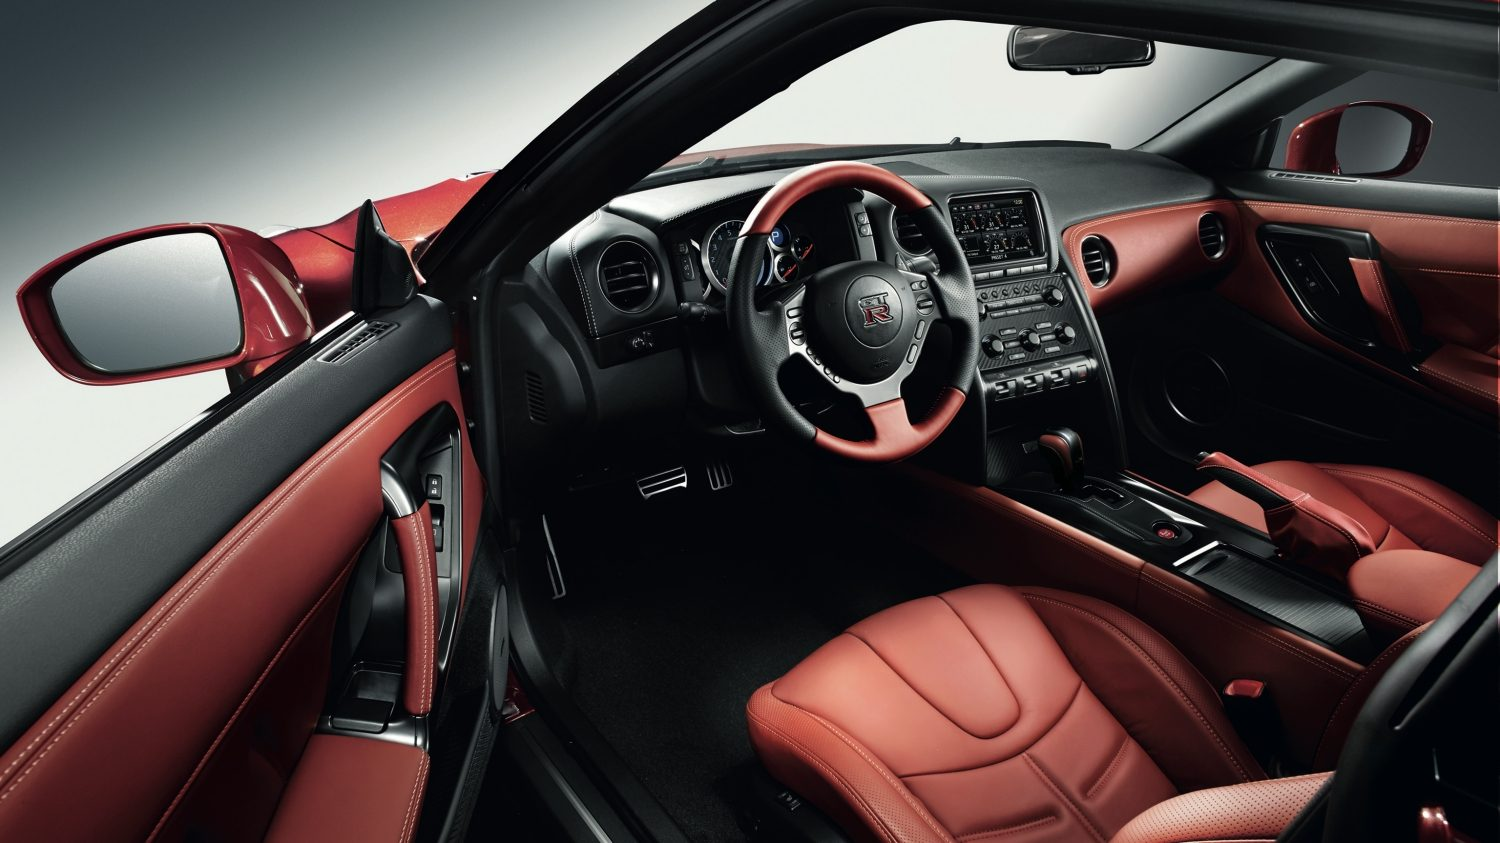 Nissan GT-R - Interior front view